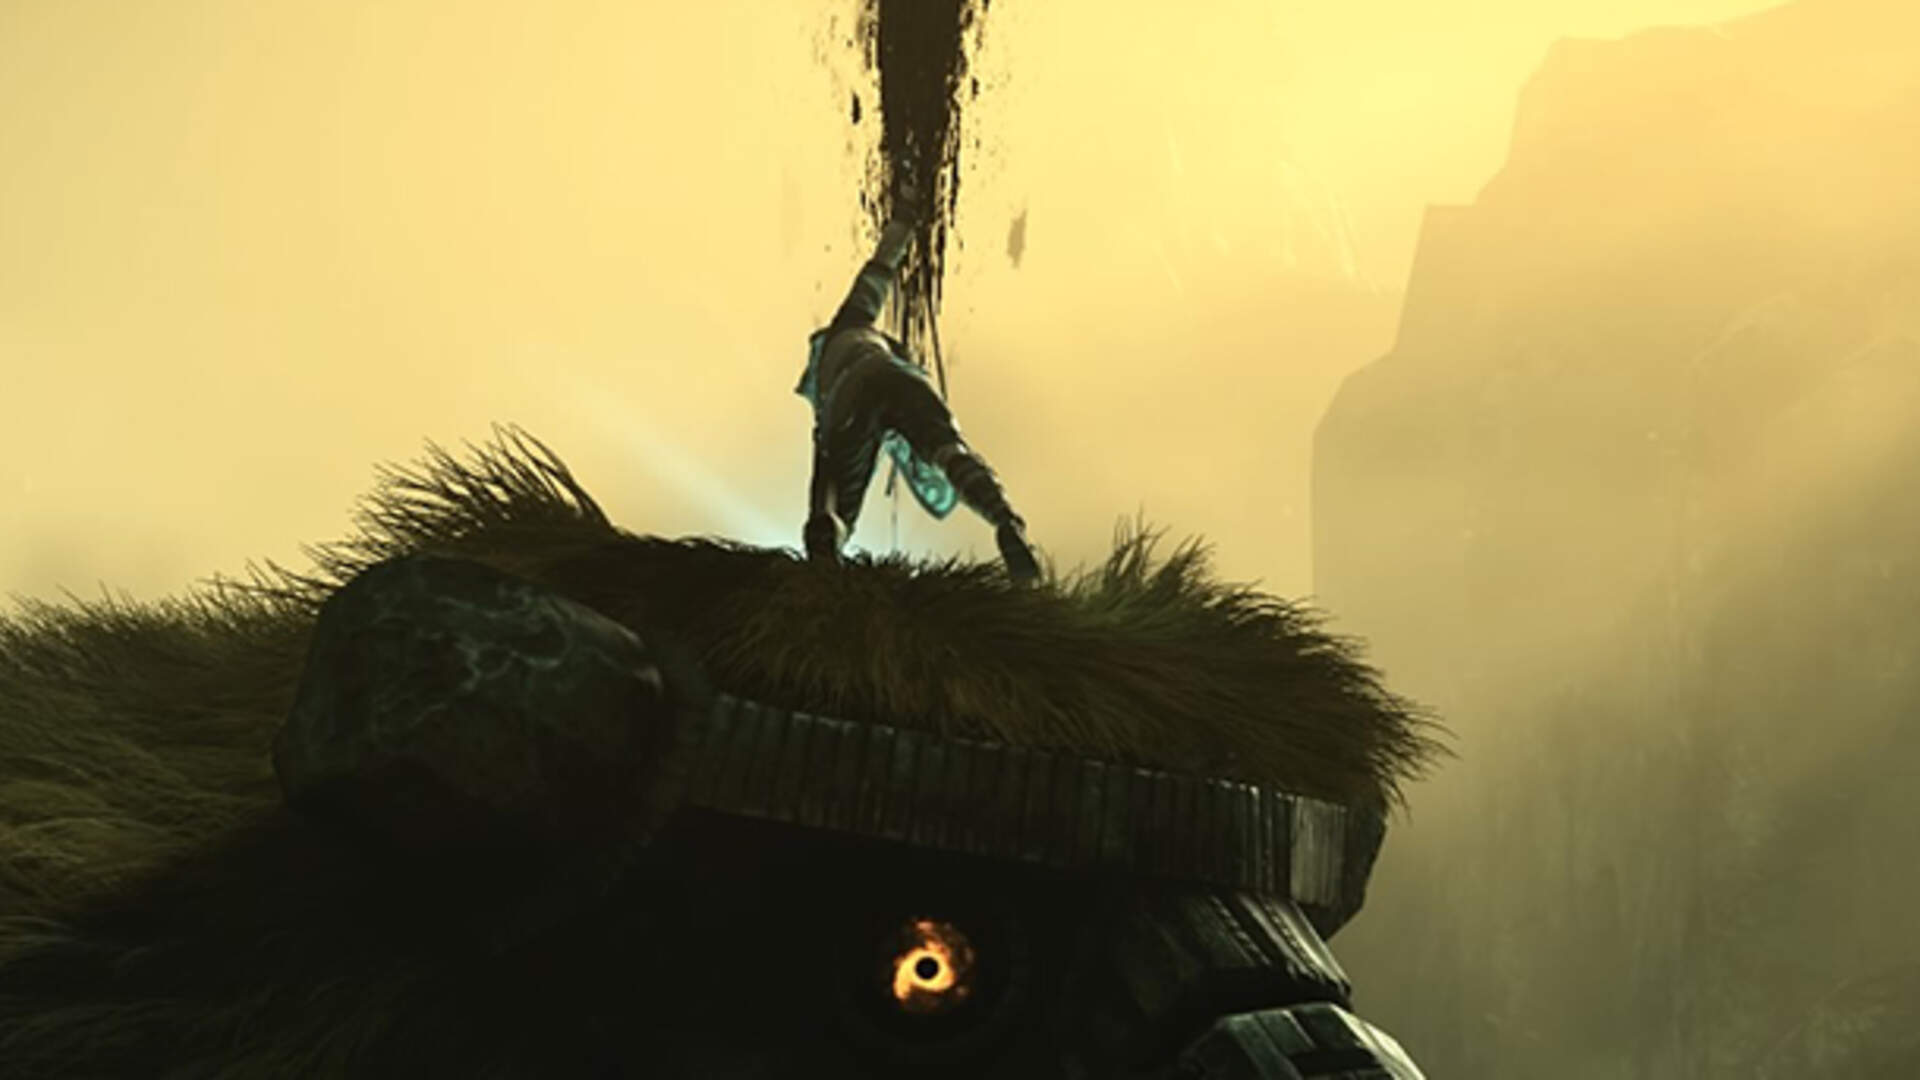 Shadow Of The Colossus Remake On Ps4 Loses The Magic In Its Quest